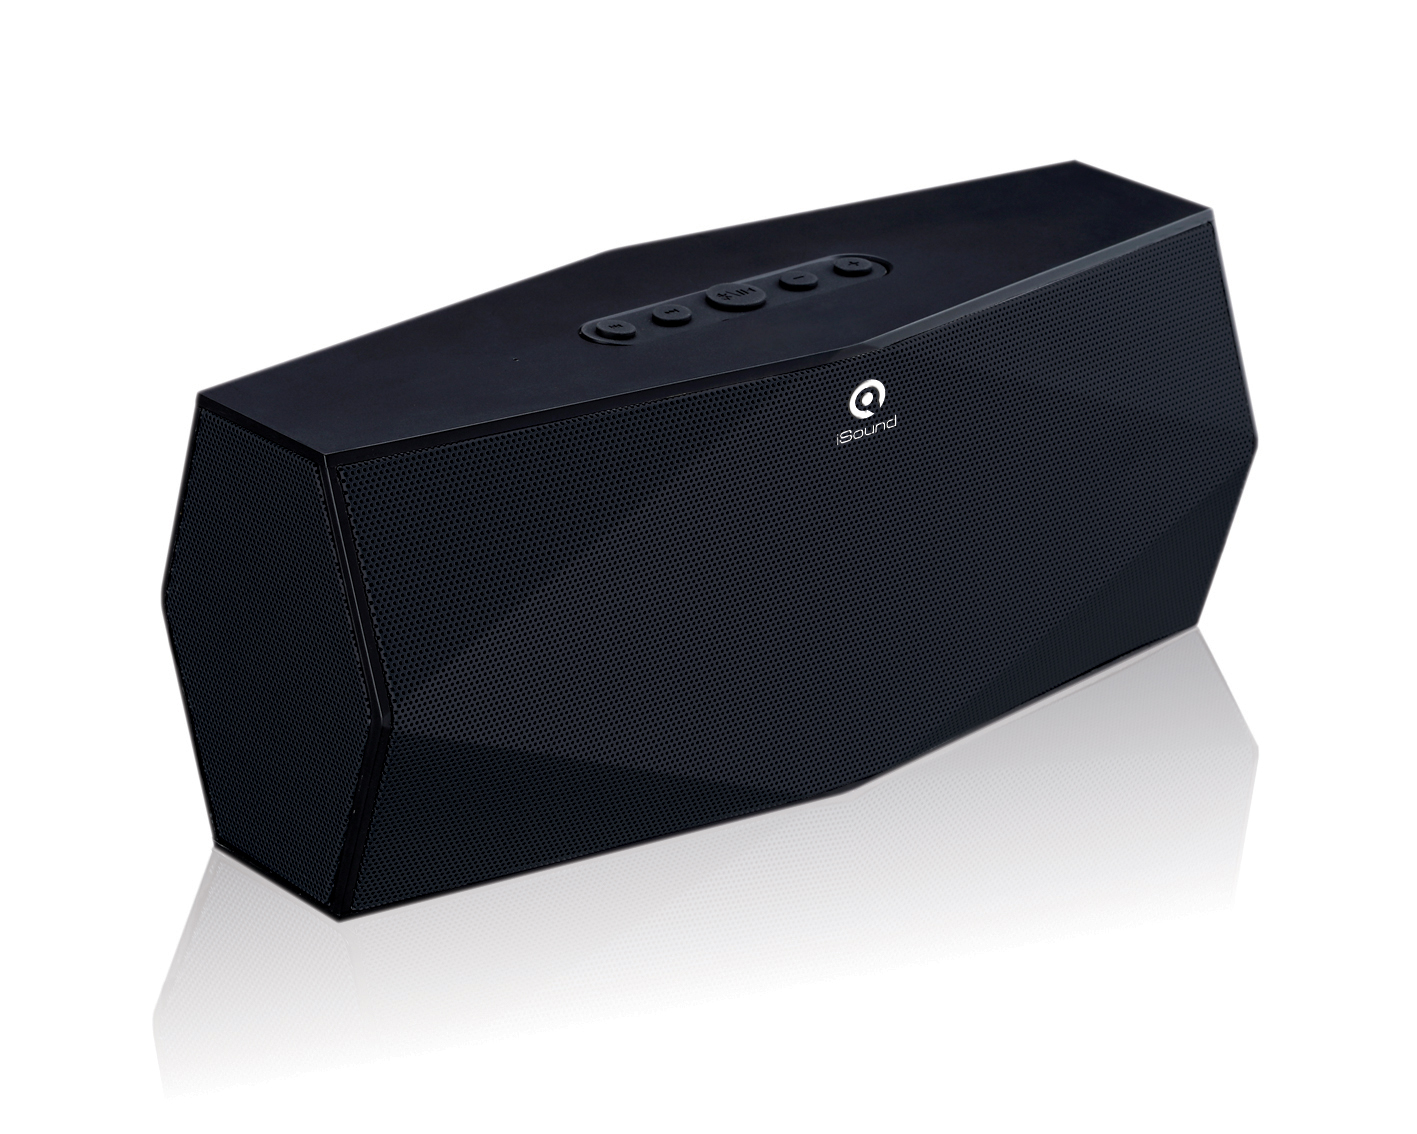 Loa Bluetooth iSound SP12 1 /2.0